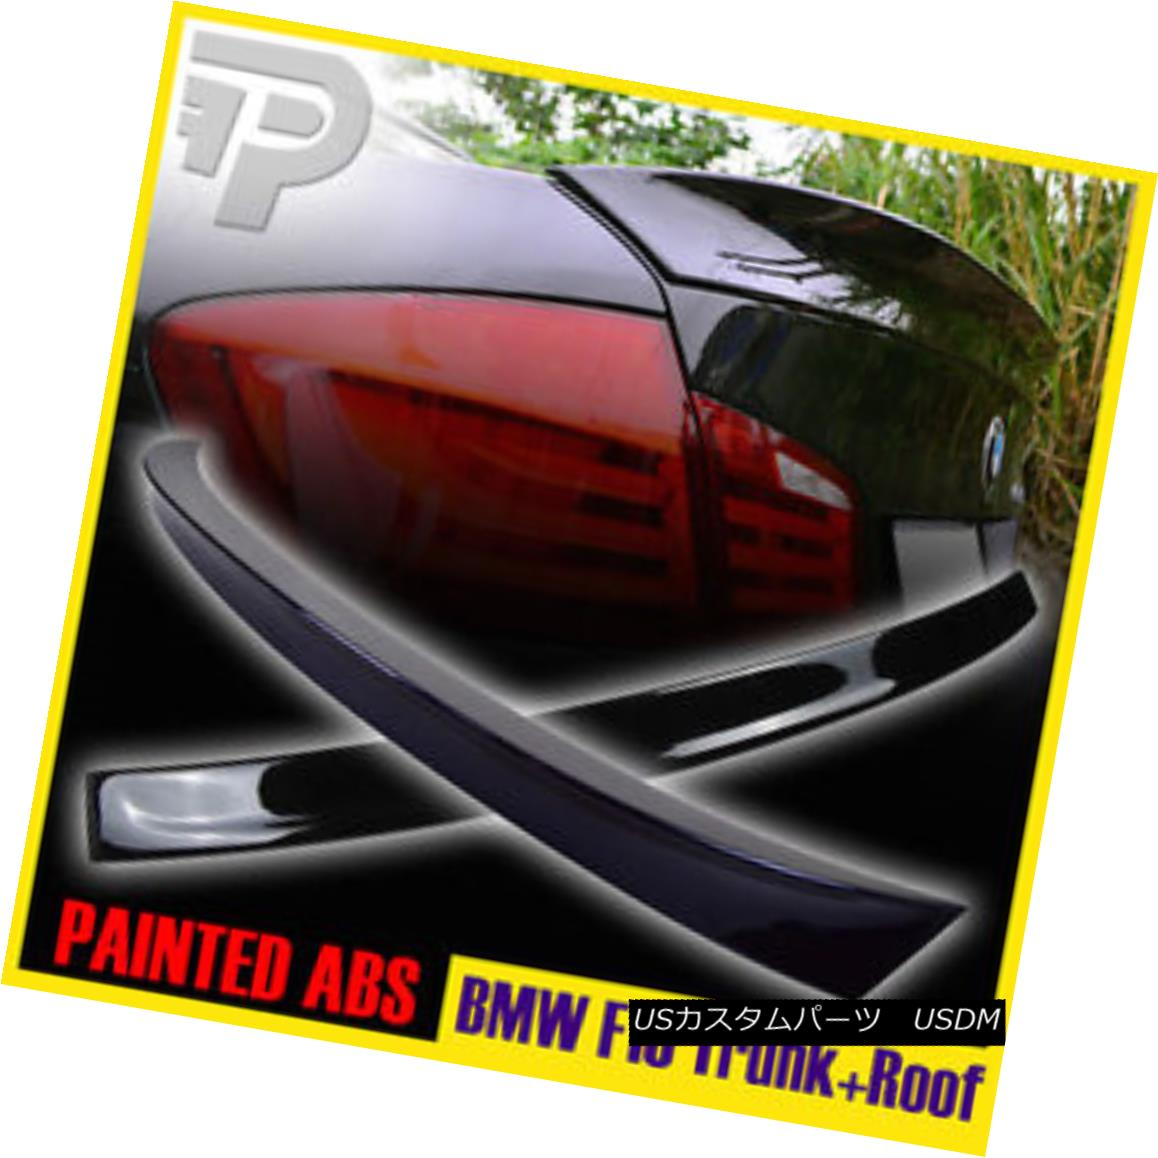 エアロパーツ PAINTED 5-SERIES F10 BMW 3D ROOF & M5 REAR TRUNK BOOT SPOILER ▼ PAINTED 5-SERIES F10 BMW 3D ROOF& M5リアトランクブーツスポイラー?